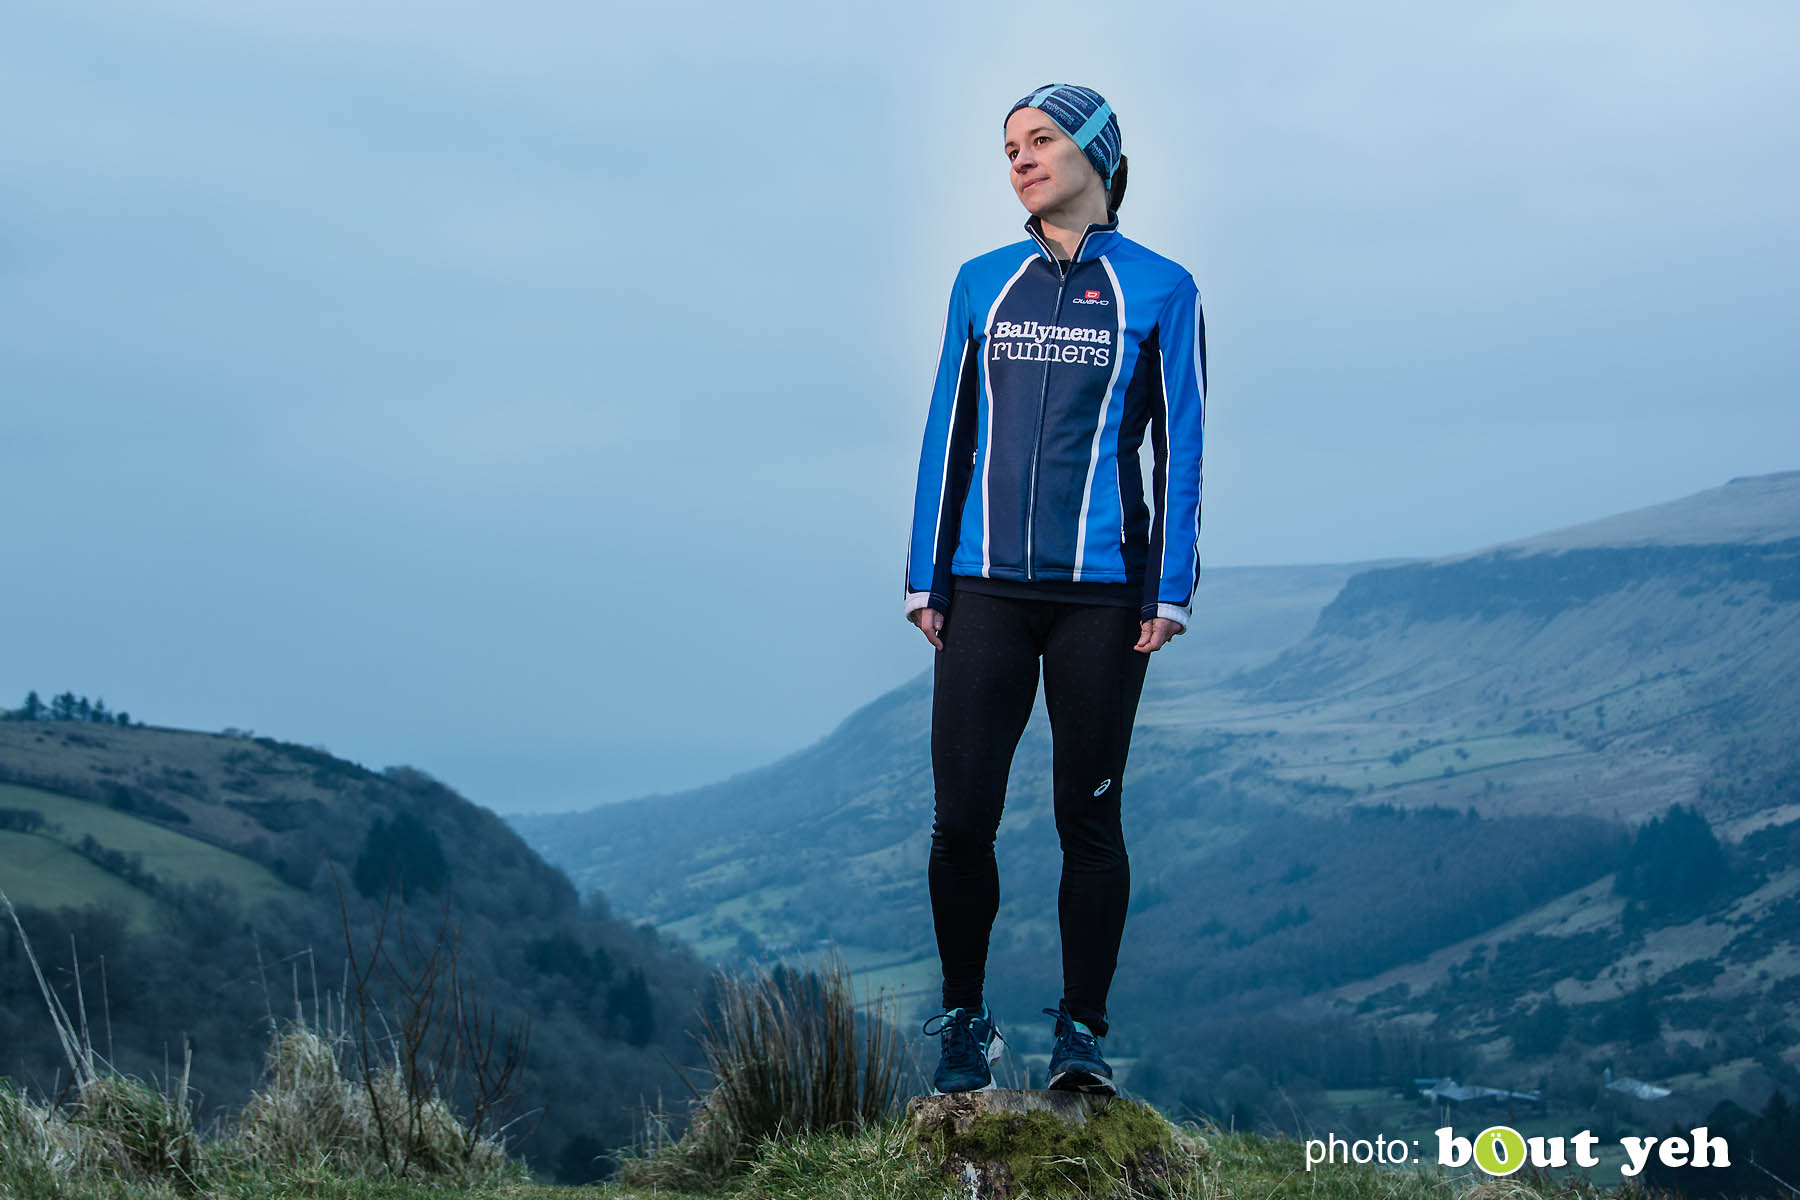 Ruth, of Ballymena Runners, at Glenariff Forest, Northern Ireland. Photo 0598.